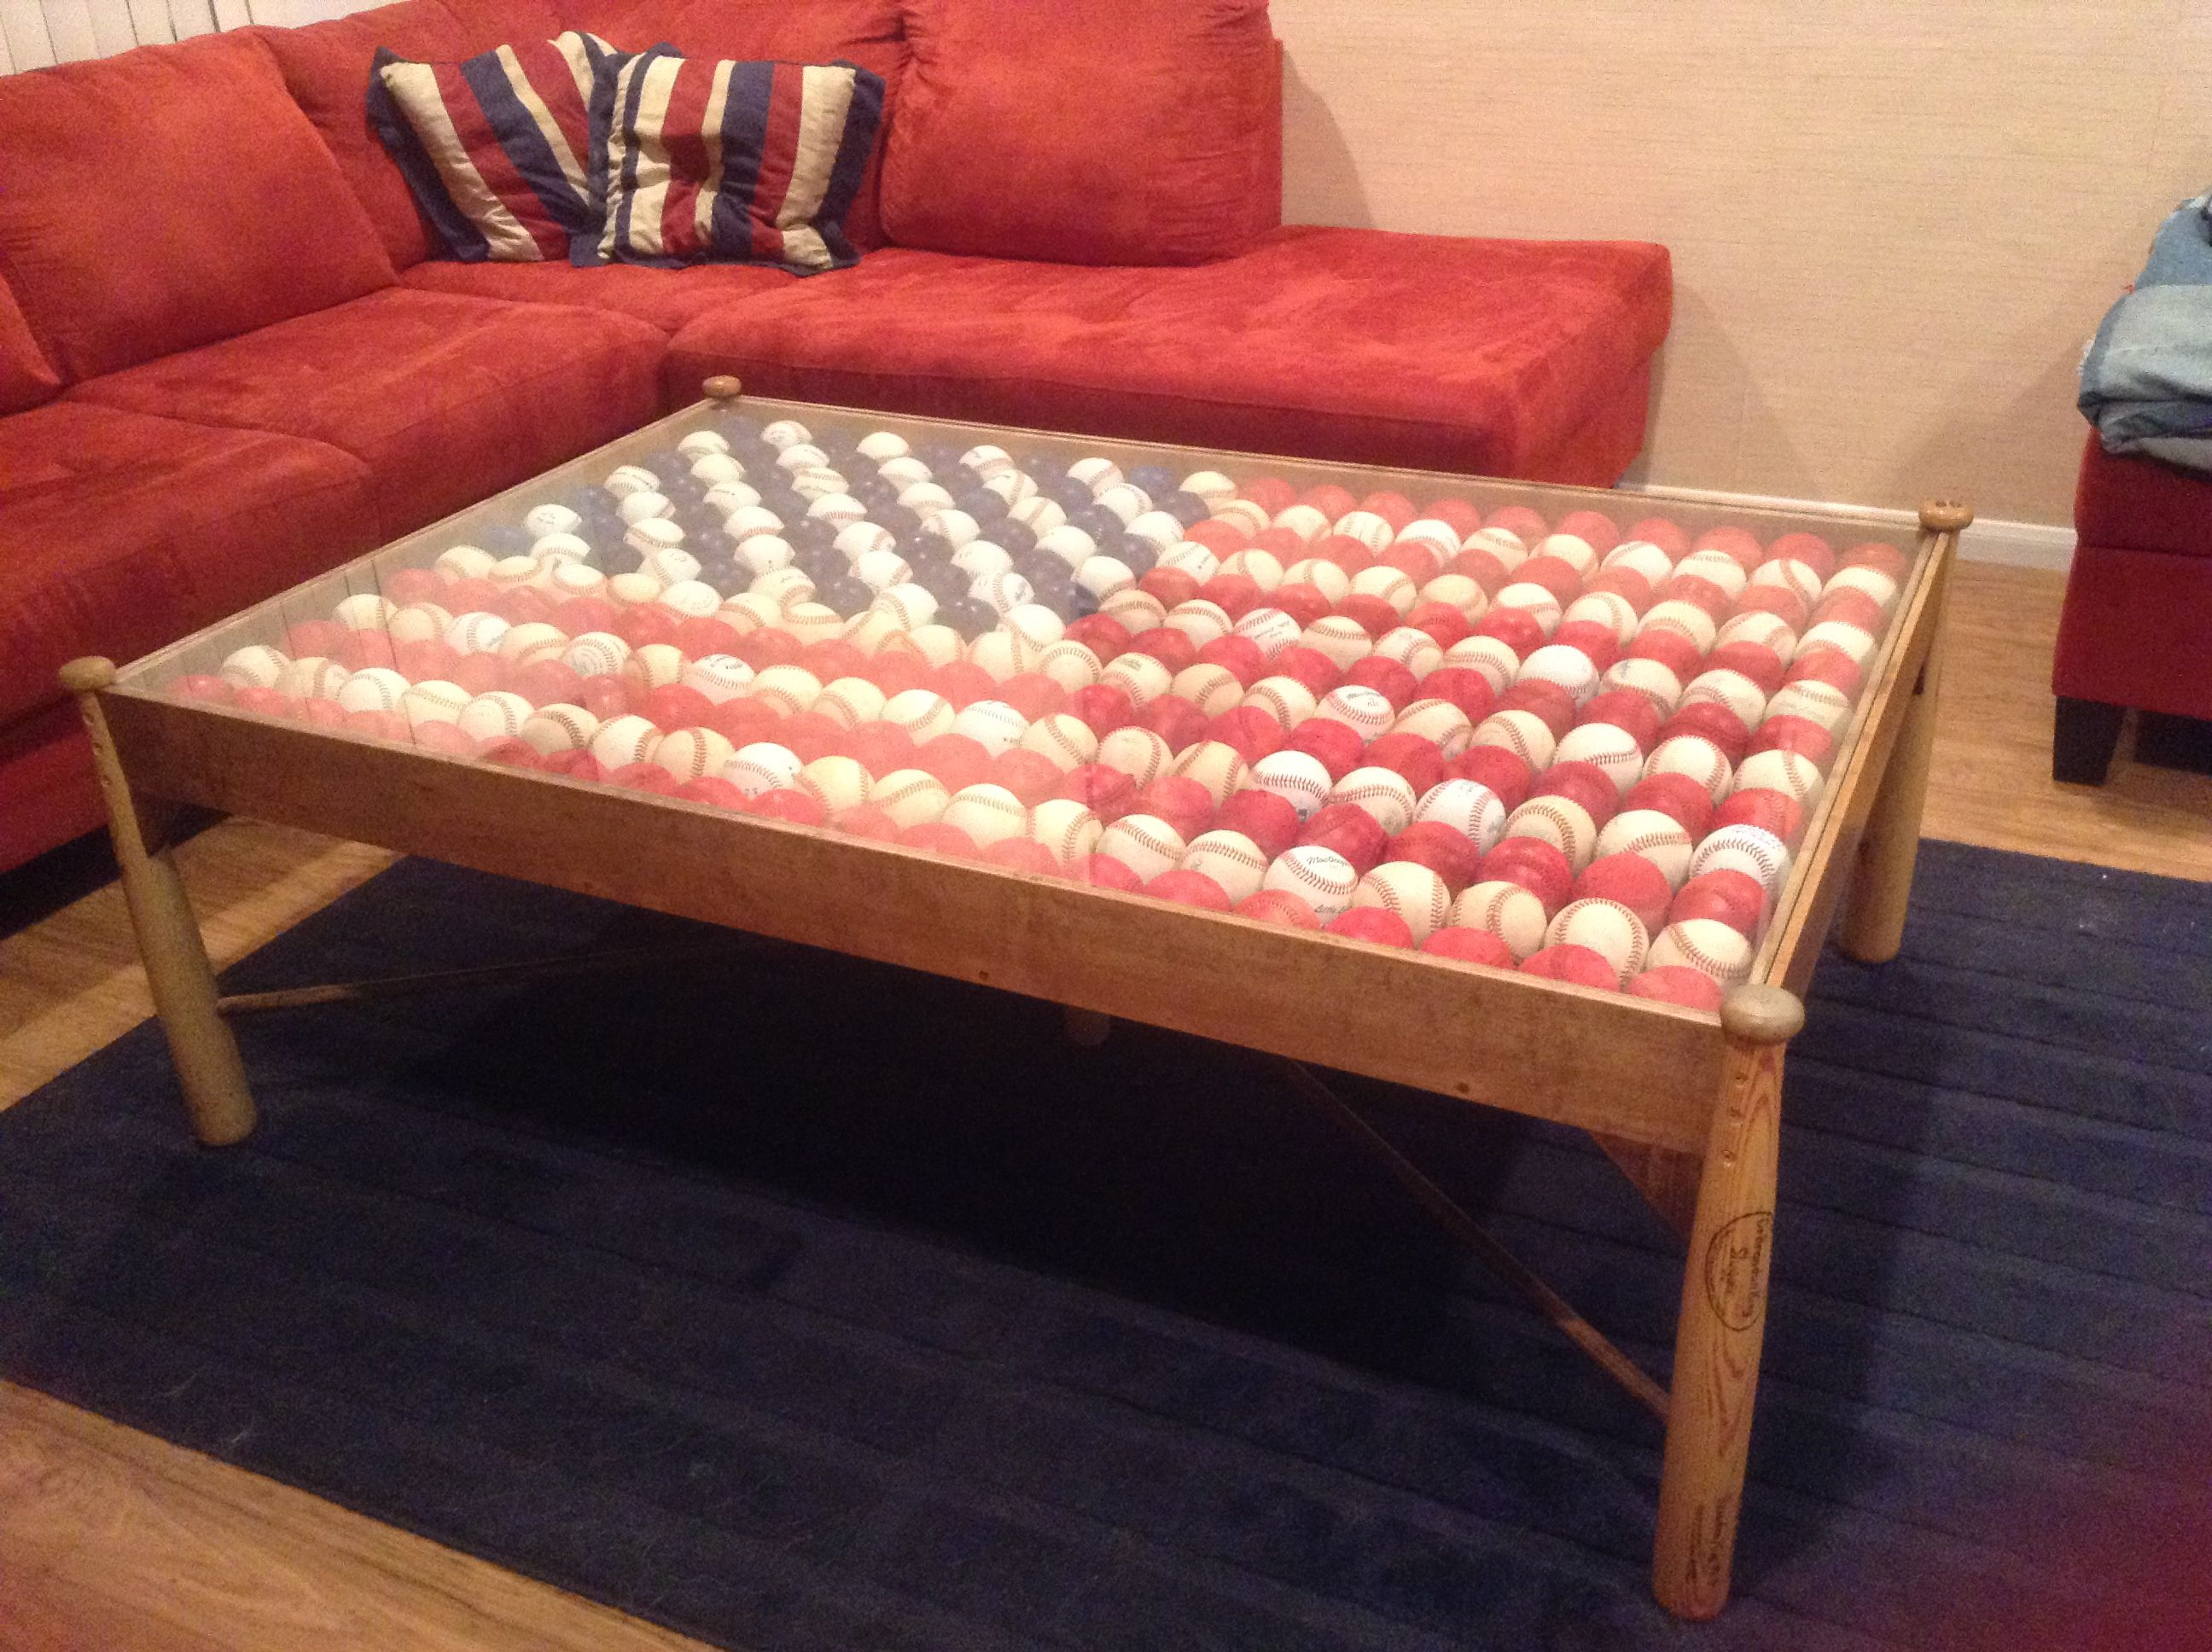 25 unique baseball furniture ideas on pinterest boys baseball games room sofa and coffee table brandans baseball american flag coffee table made with baseball bats for the legs one of a kind geotapseo Gallery